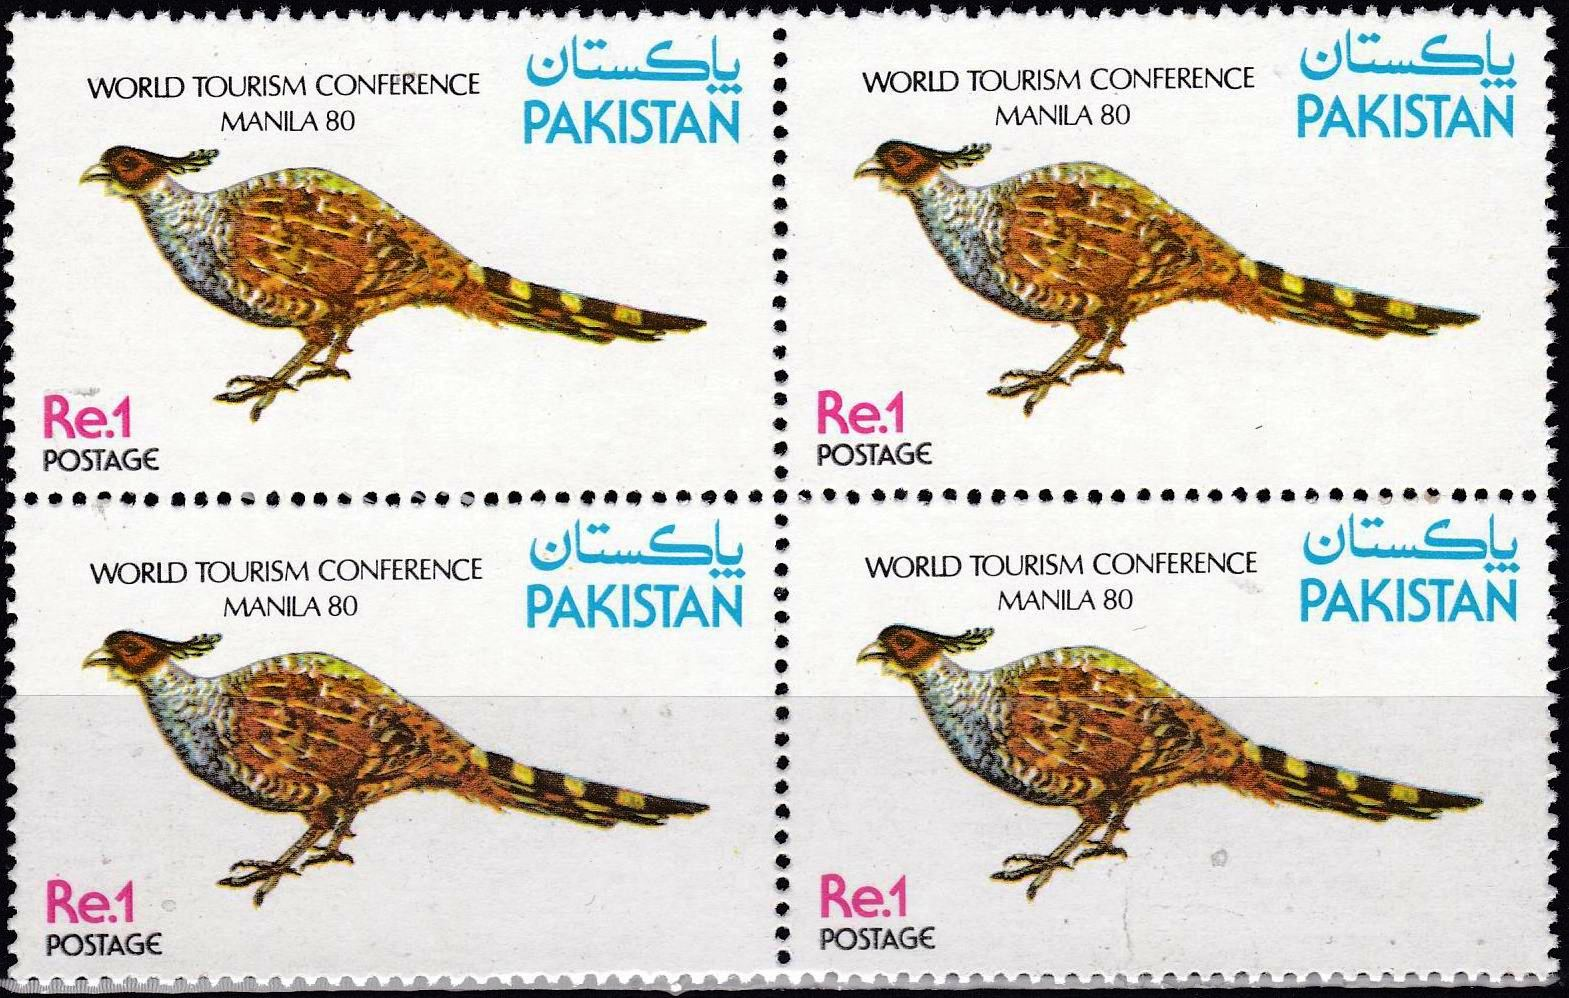 Pakistan Stamps 1980 World Tourism Conference Pheasant